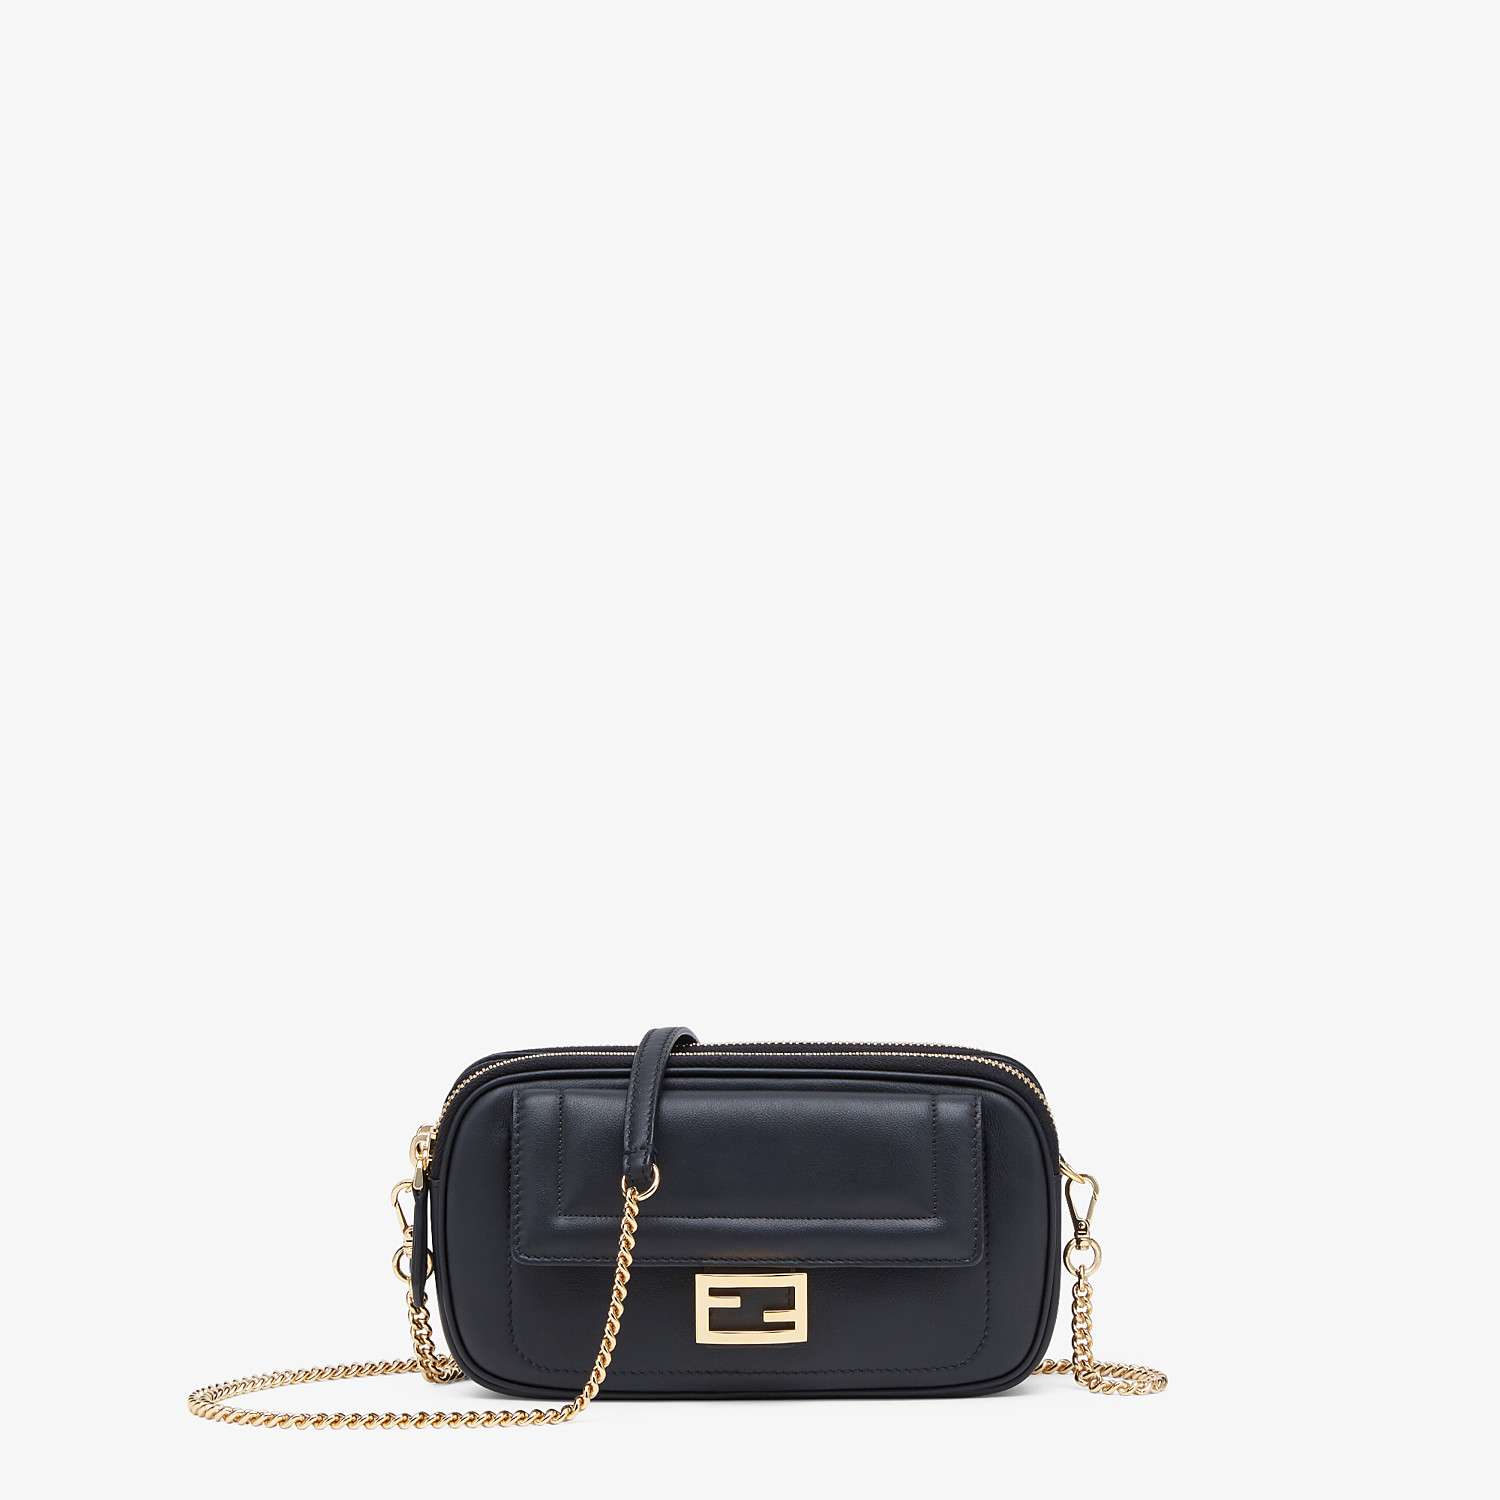 FENDI EASY 2 BAGUETTE - Black leather mini bag - view 1 detail